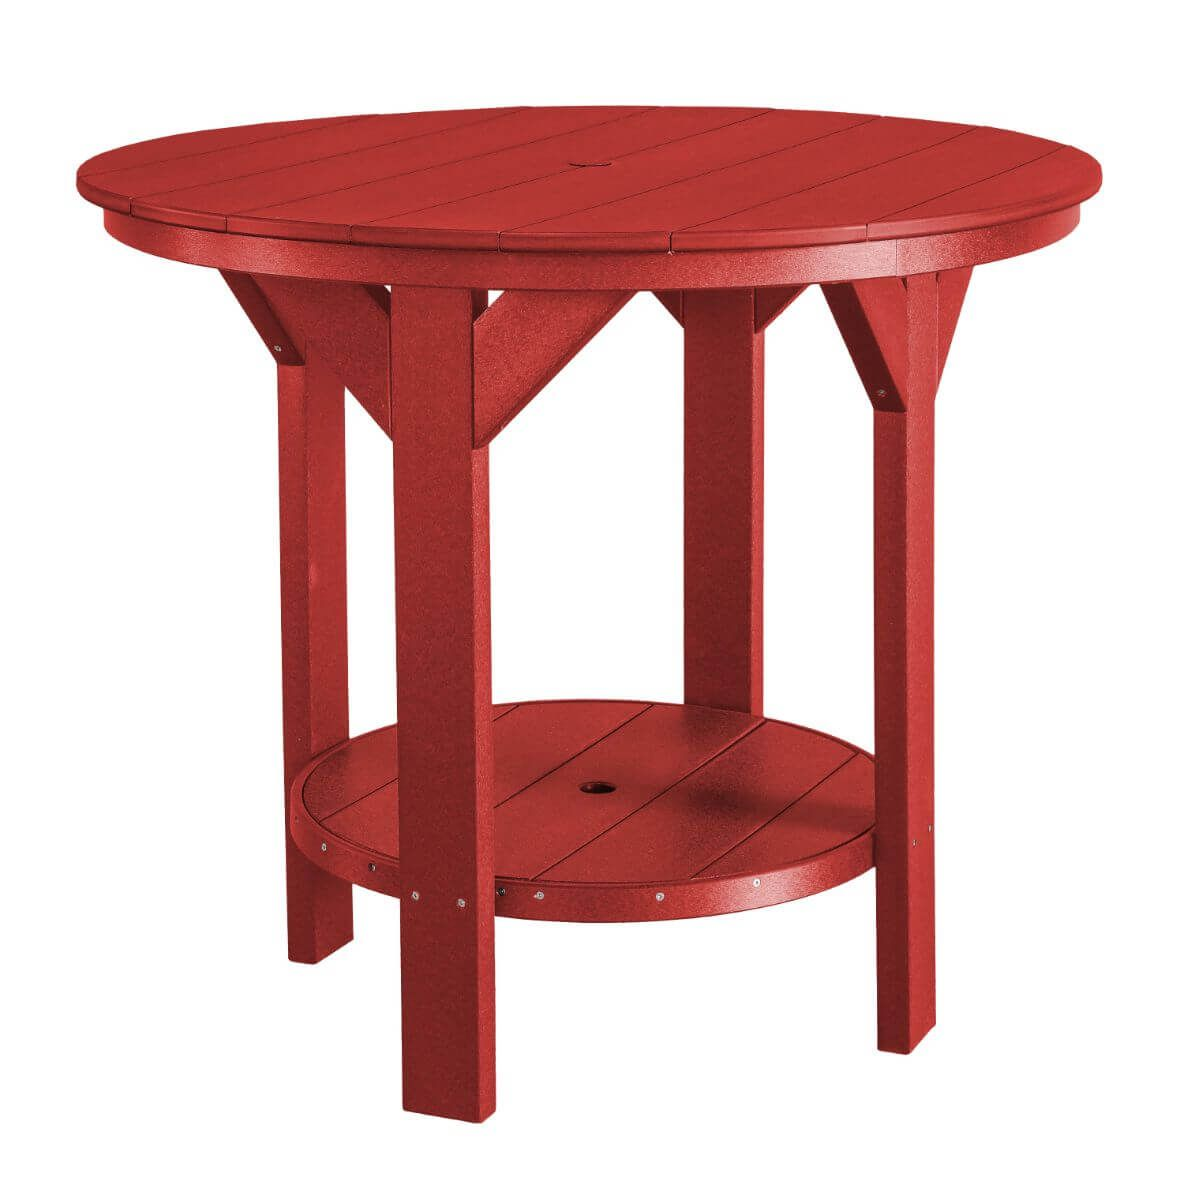 Cardinal Red Sidra Outdoor Pub Table